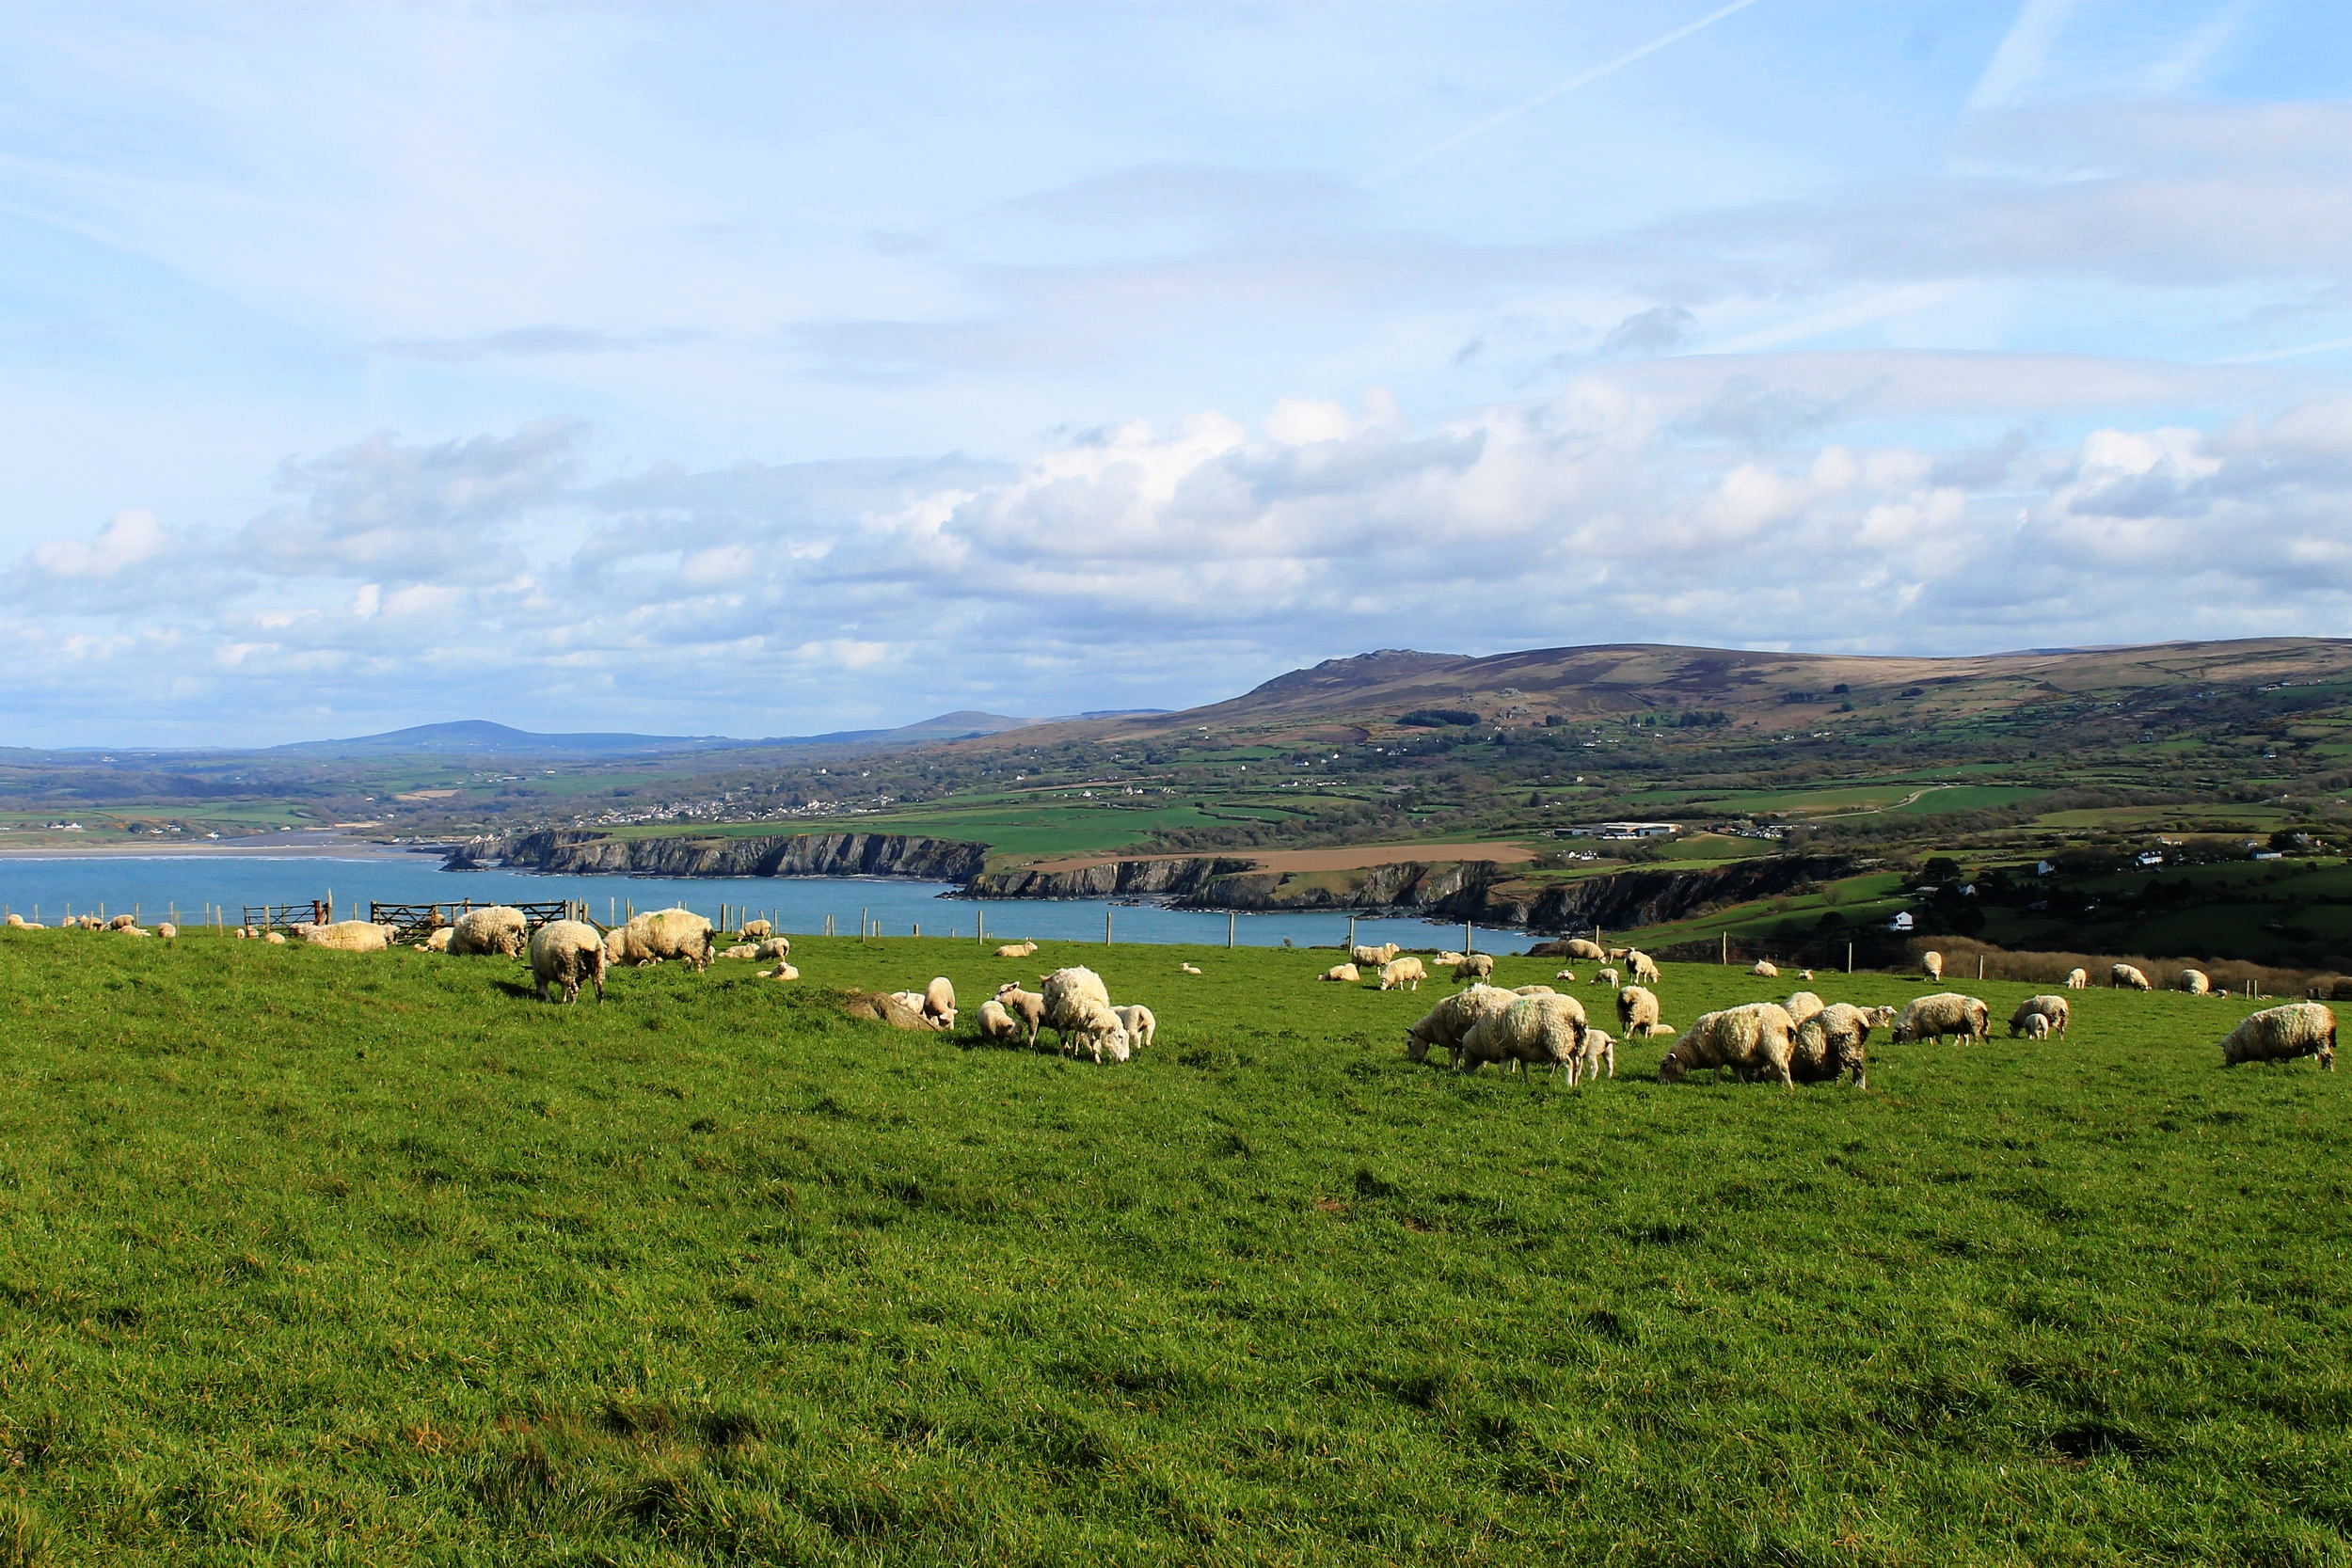 Sheep grazing on the Pembrokeshire Coast Path at Dinas Head